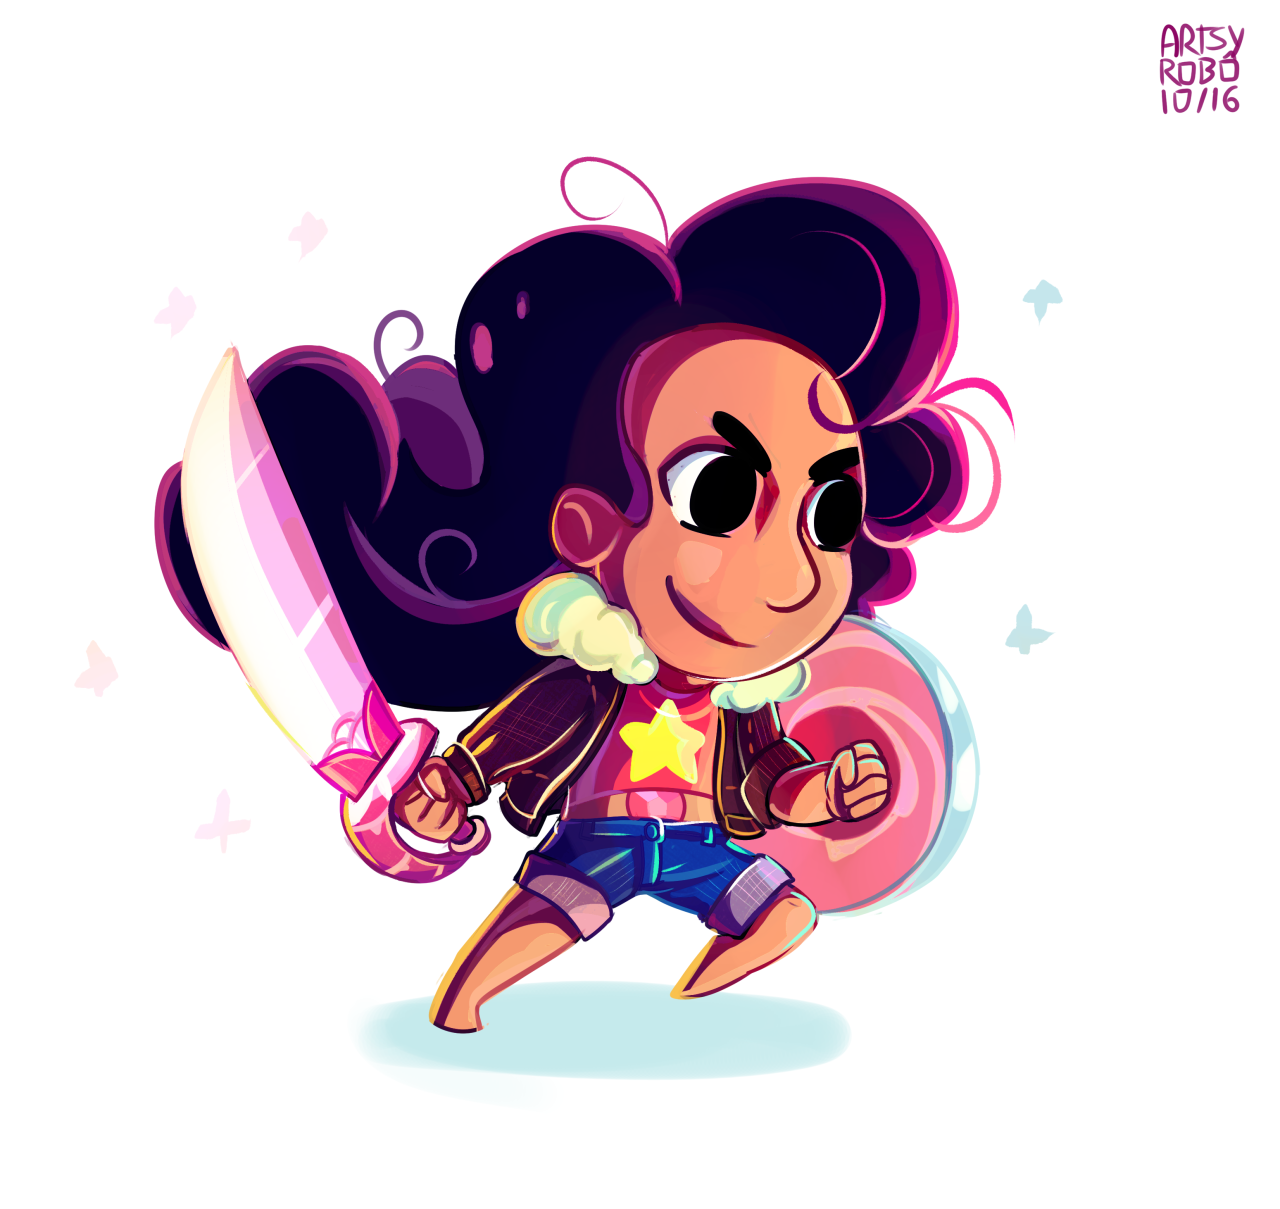 Stevonnie 10-16 Another chibi sample! one more to go for this category art only blog - twitter